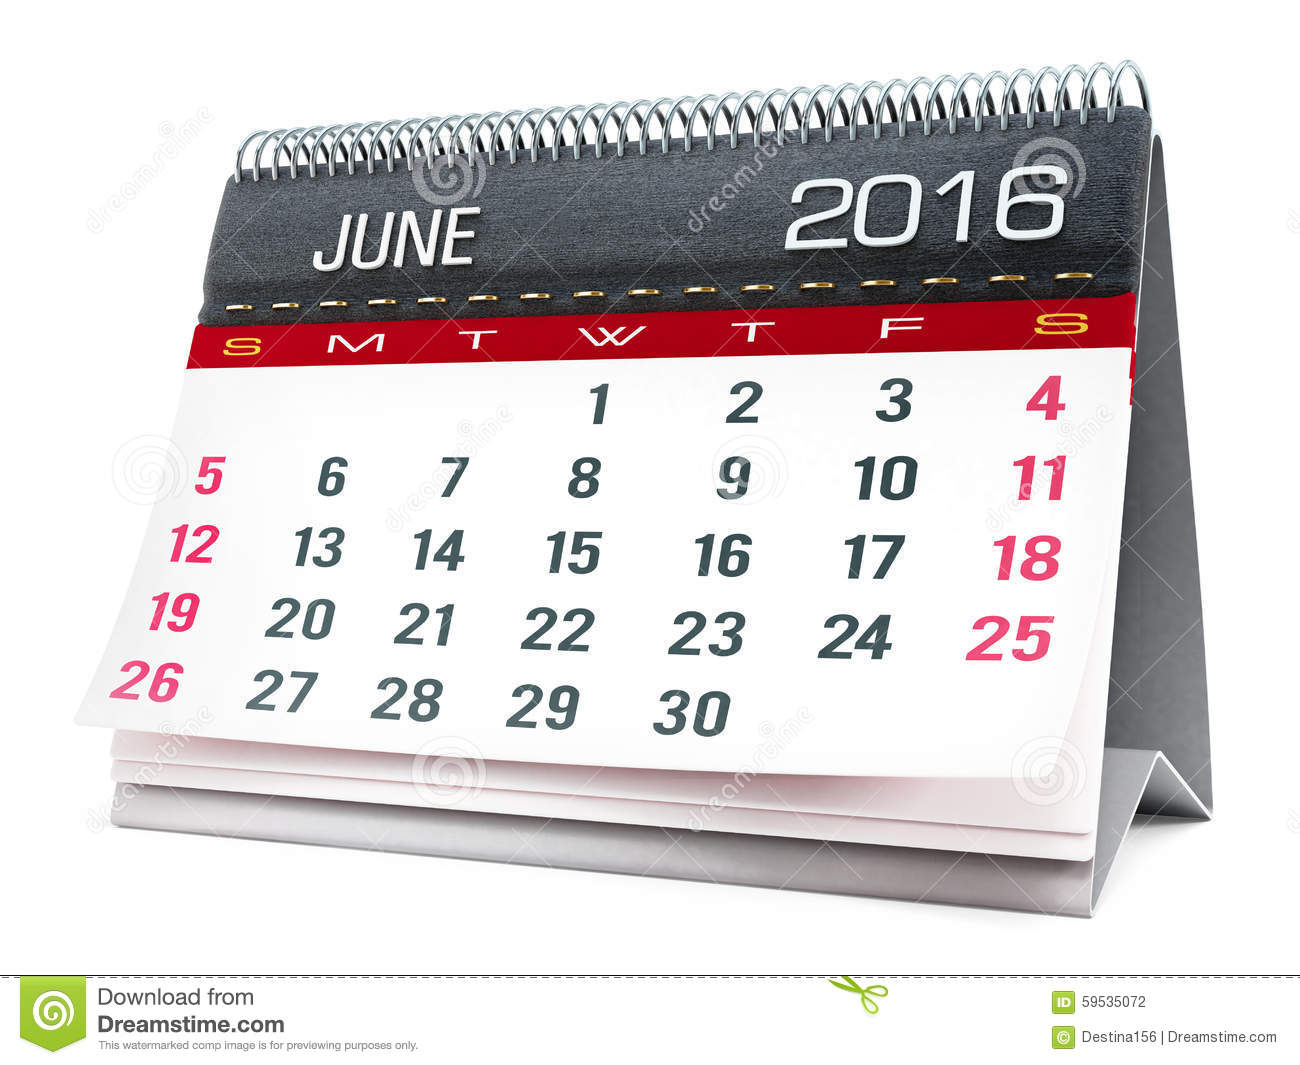 April 2016 clipart calendar image library library June calendar 2016 clipart - ClipartFest image library library